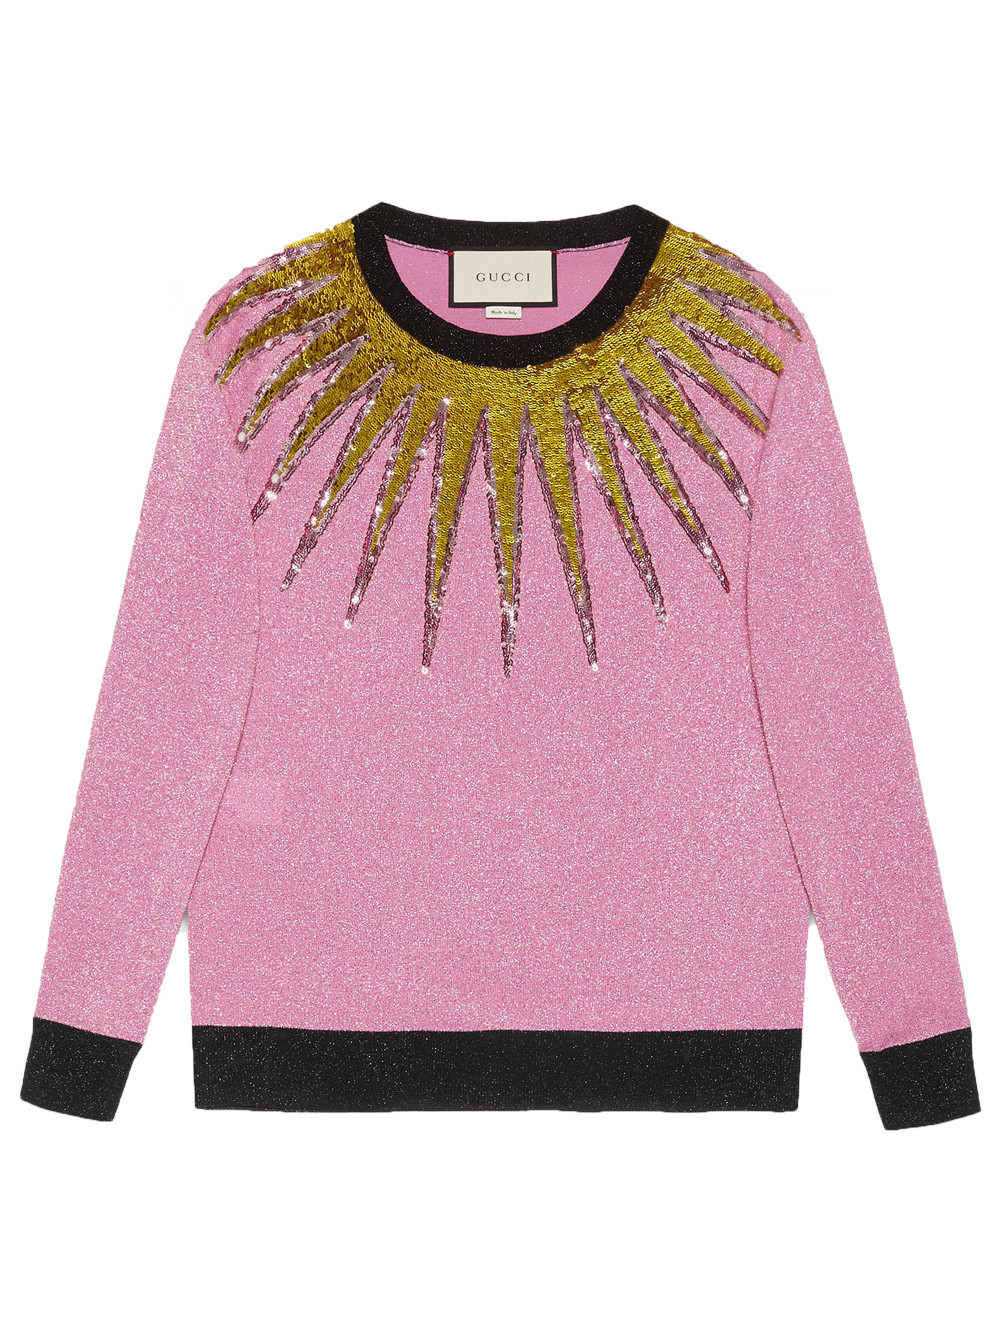 Gucci Embroidered Metallic Sweater, Light Pink, Fuchsia Lurex